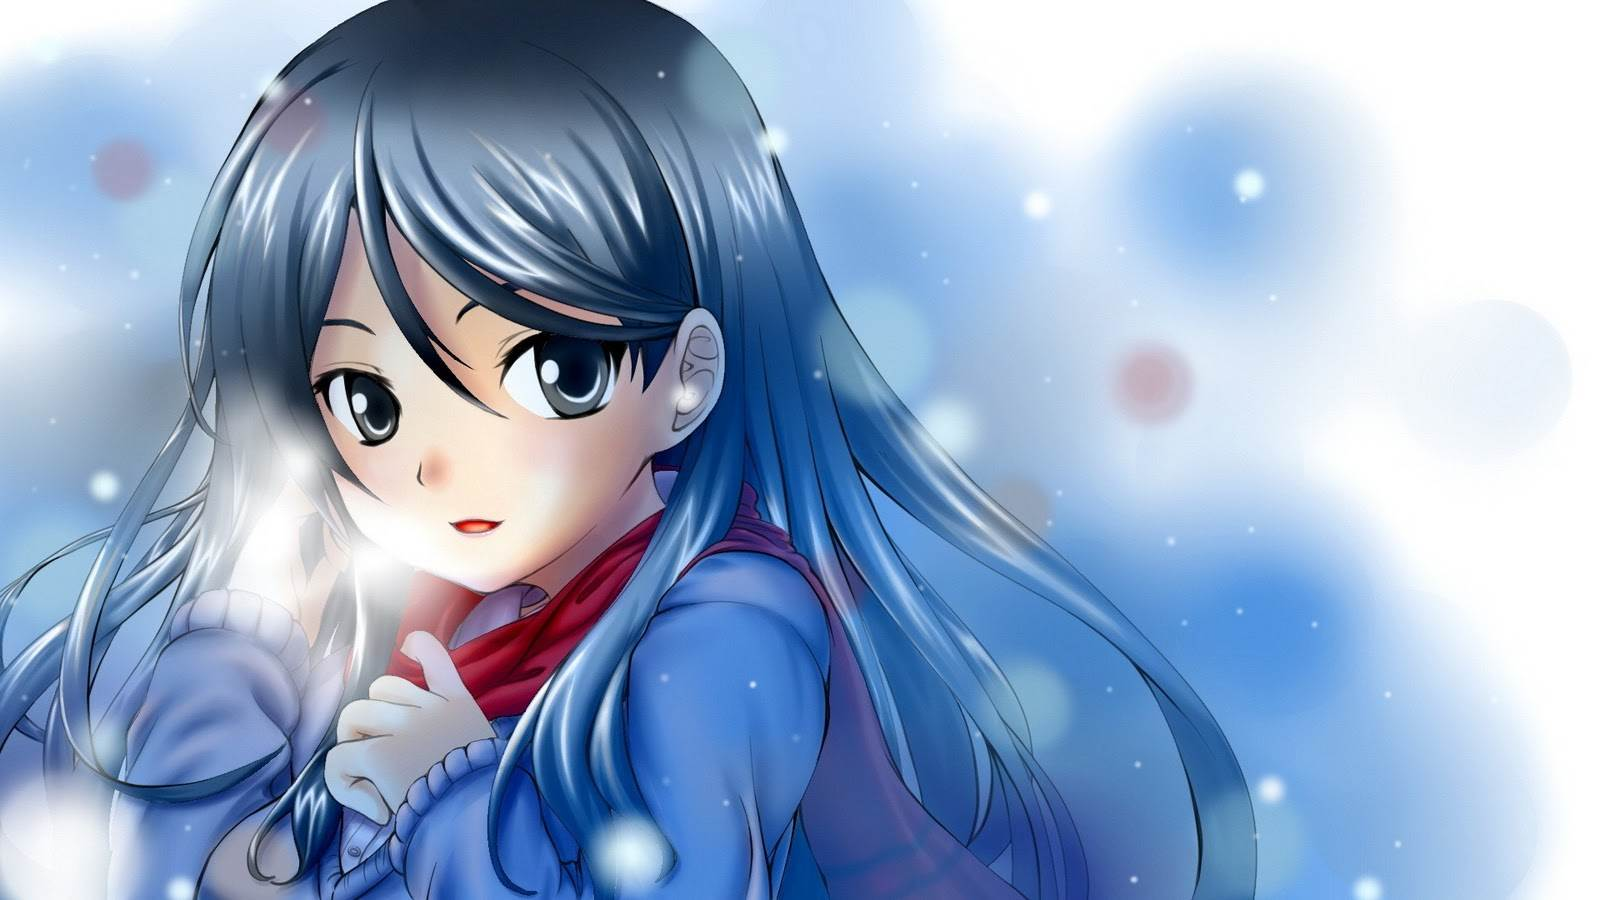 Cute Anime Girl Iphone Wallpaper Adorable Wallpapers